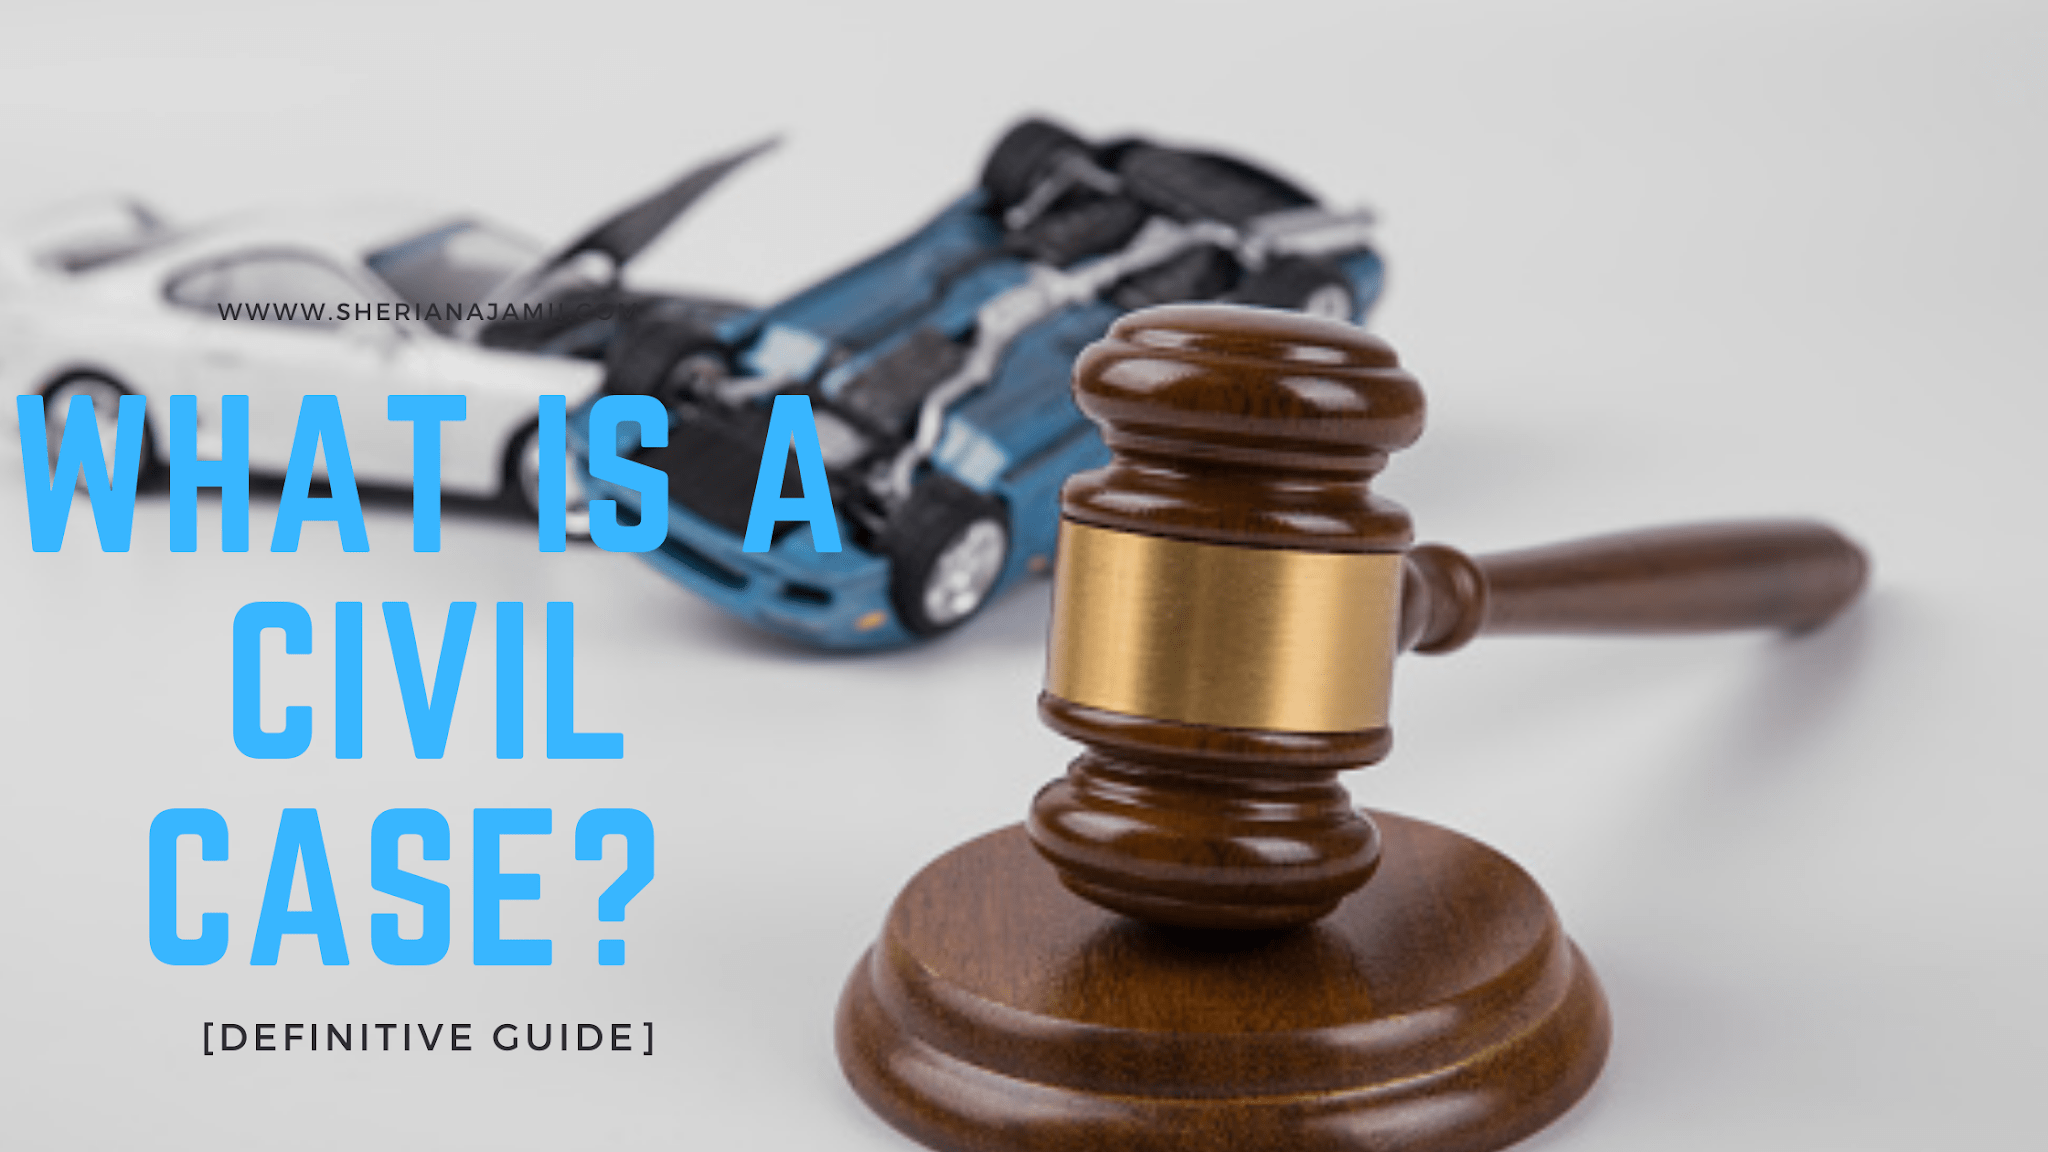 what is a civil case, examples of civil cases, civil case procedure, civil case process